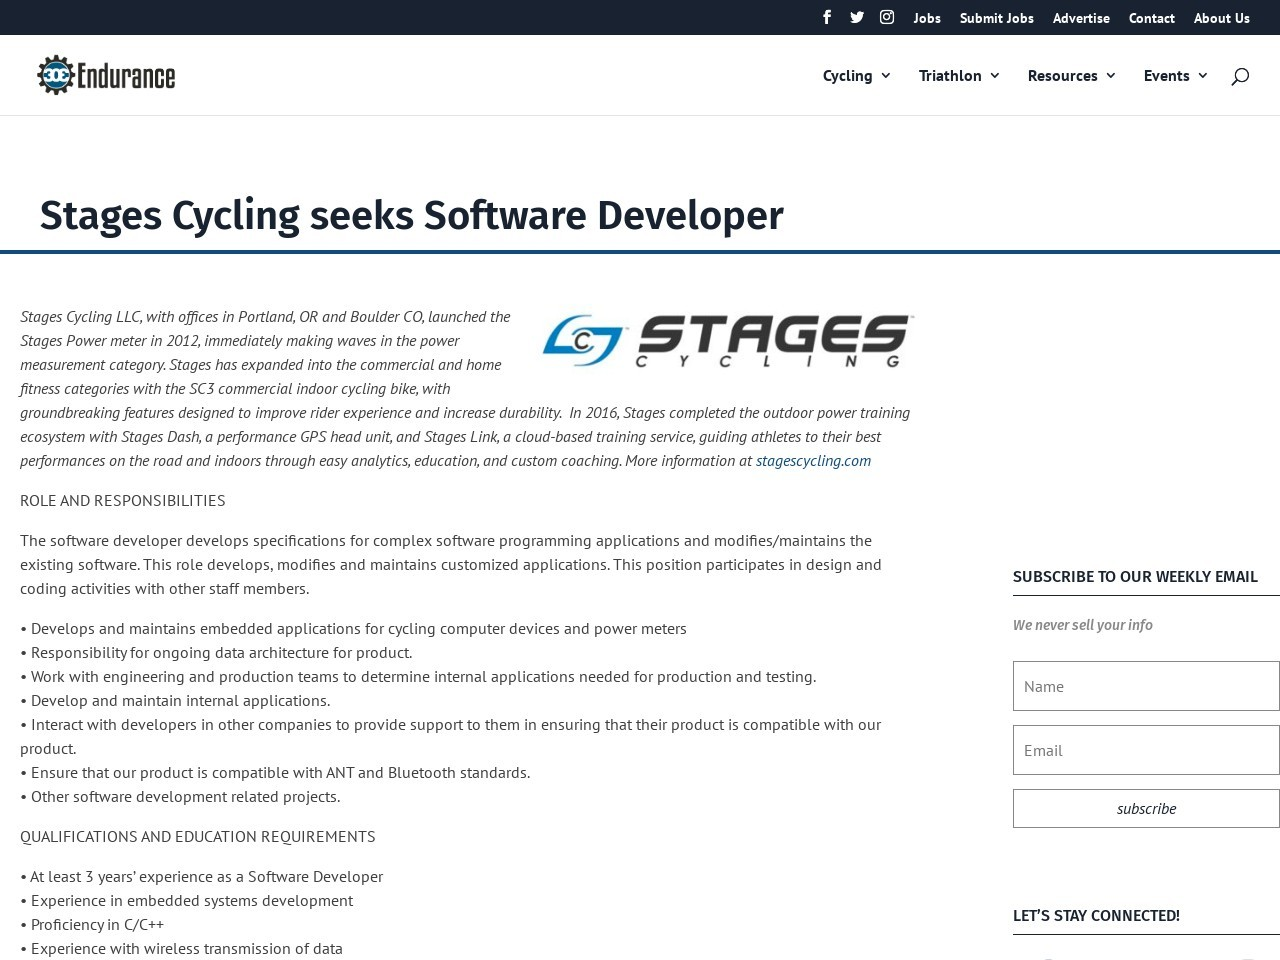 Stages Cycling seeks Software Developer